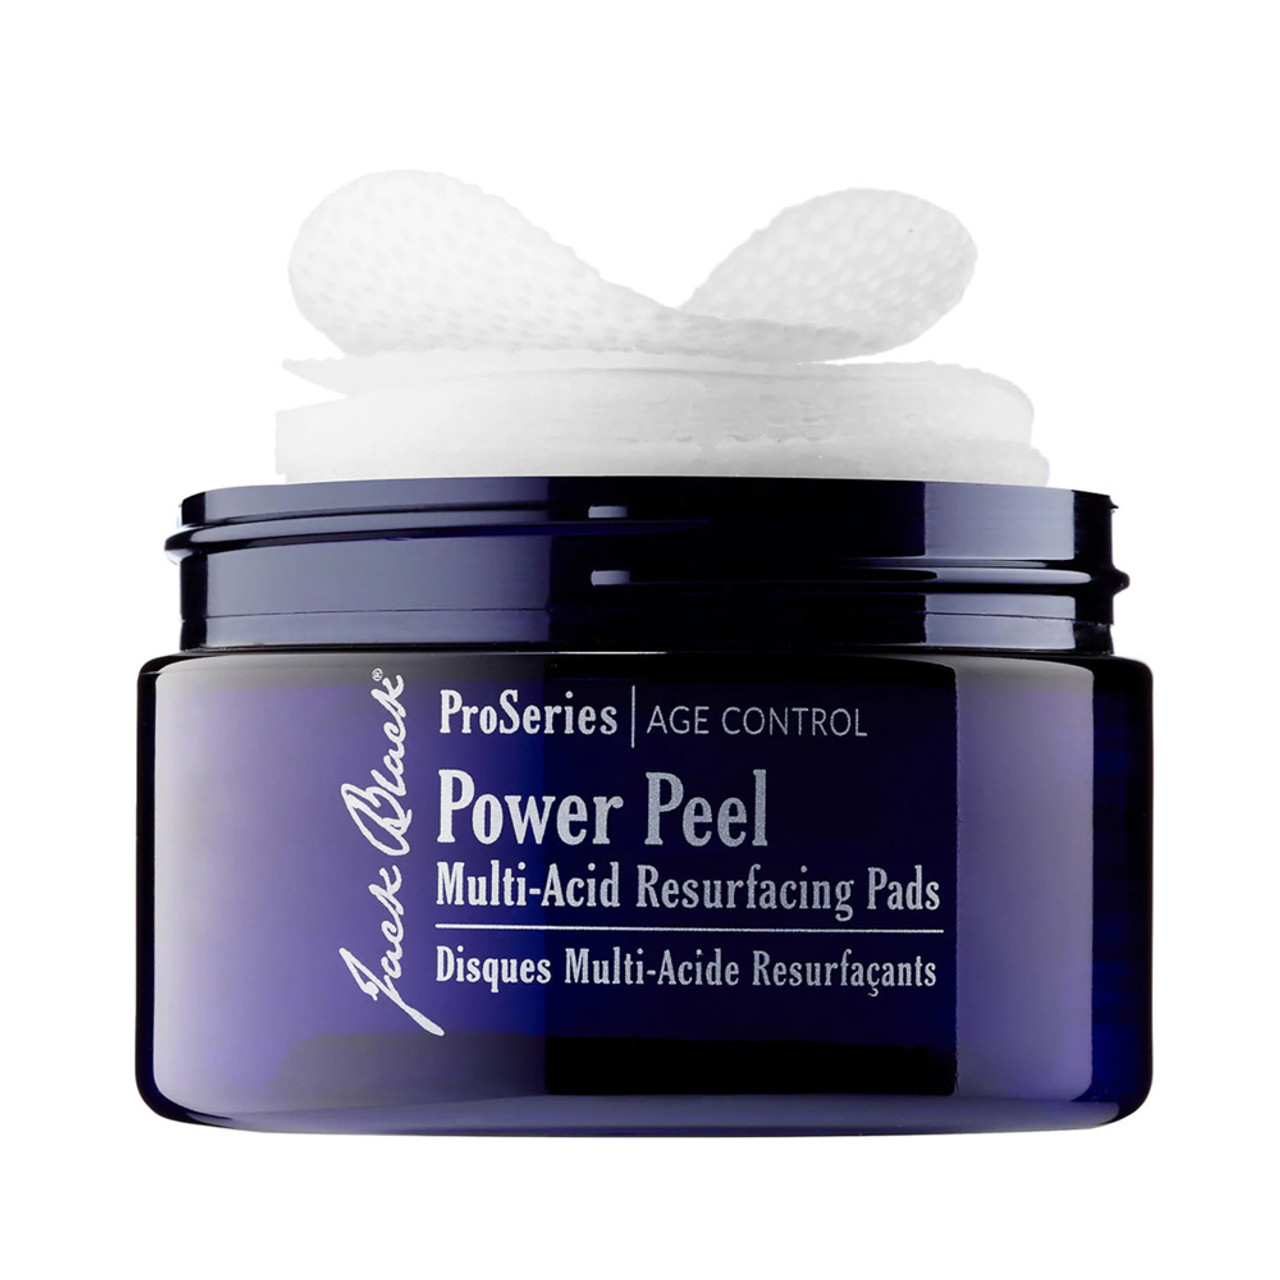 Jack Black Power Peel Multi-Acid Resurfacing Pads (40 Count)